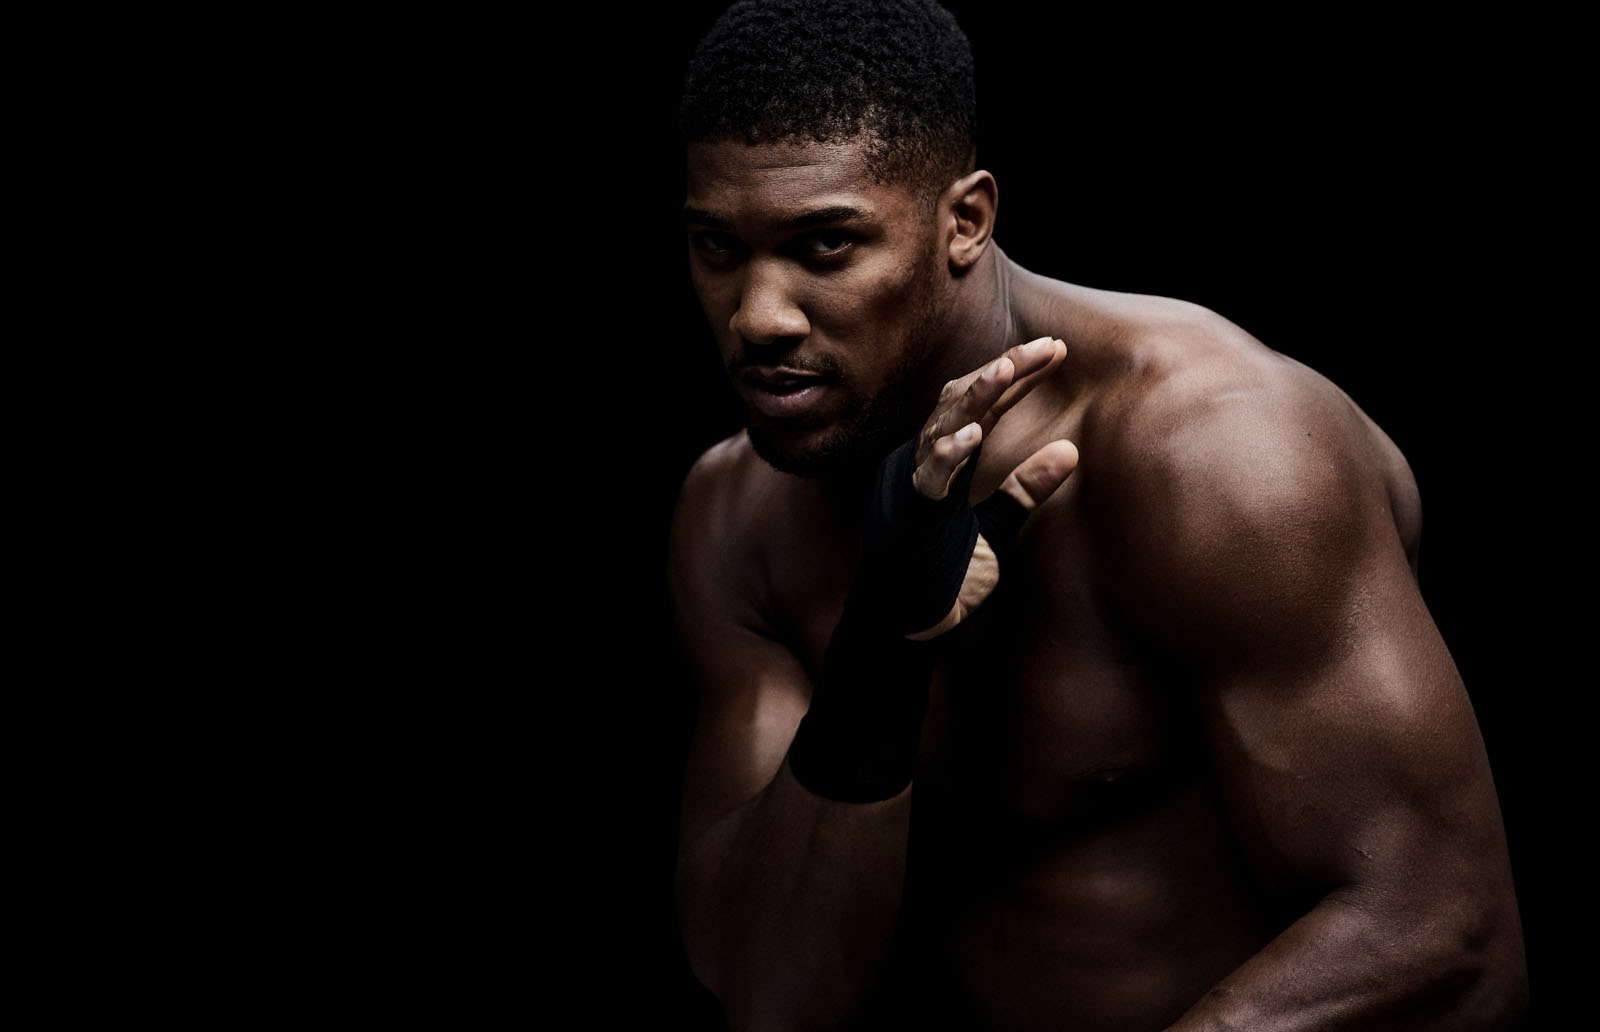 World champion boxer Anthony Joshua for Bulk Powders, photographed by CliQQ